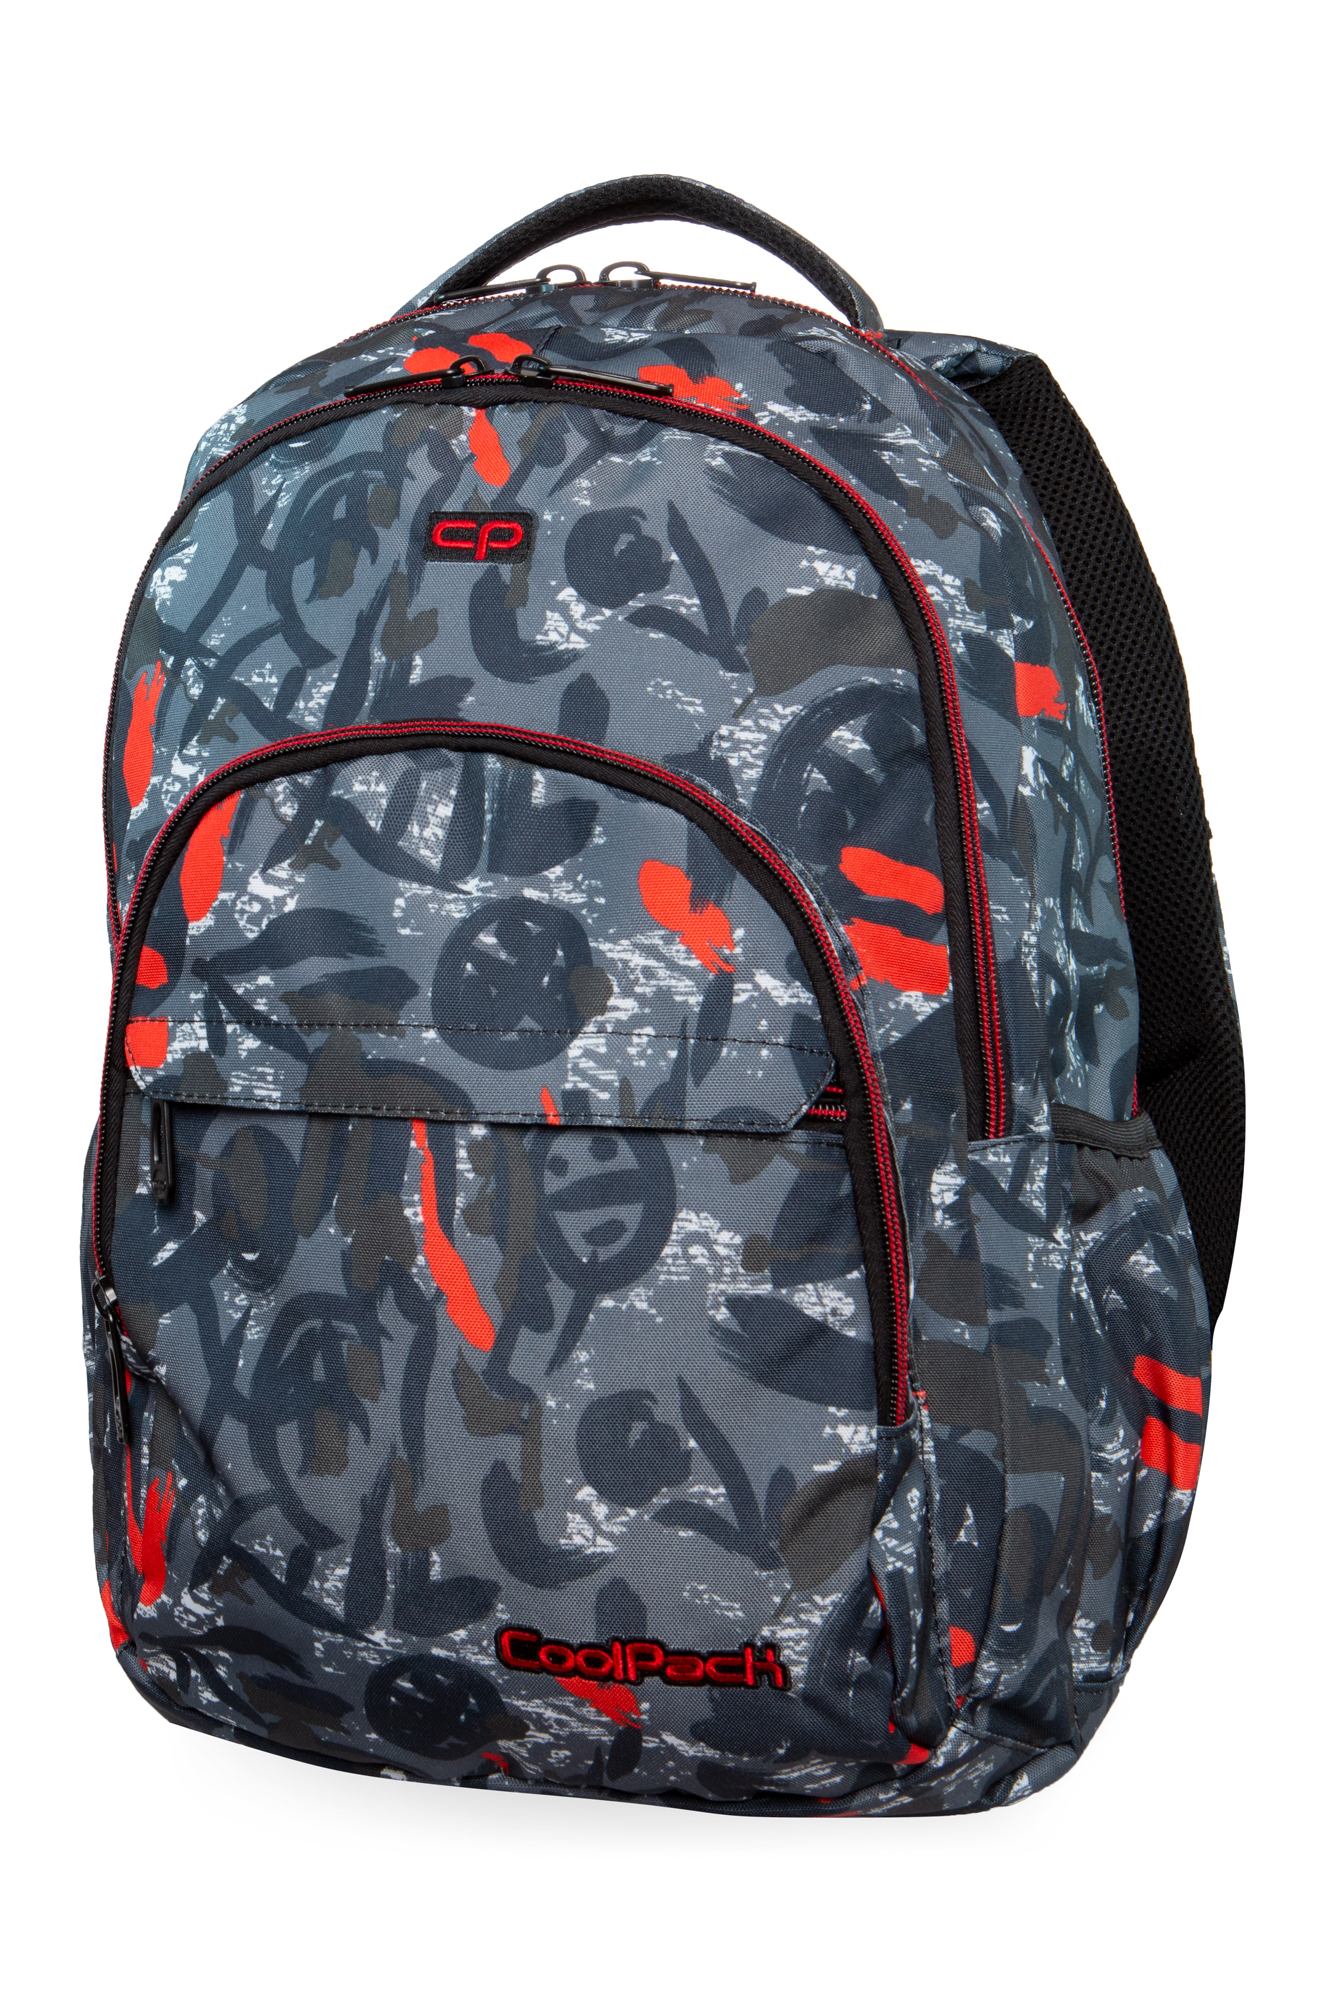 Coolpack - basic plus - youth backpack - red indian